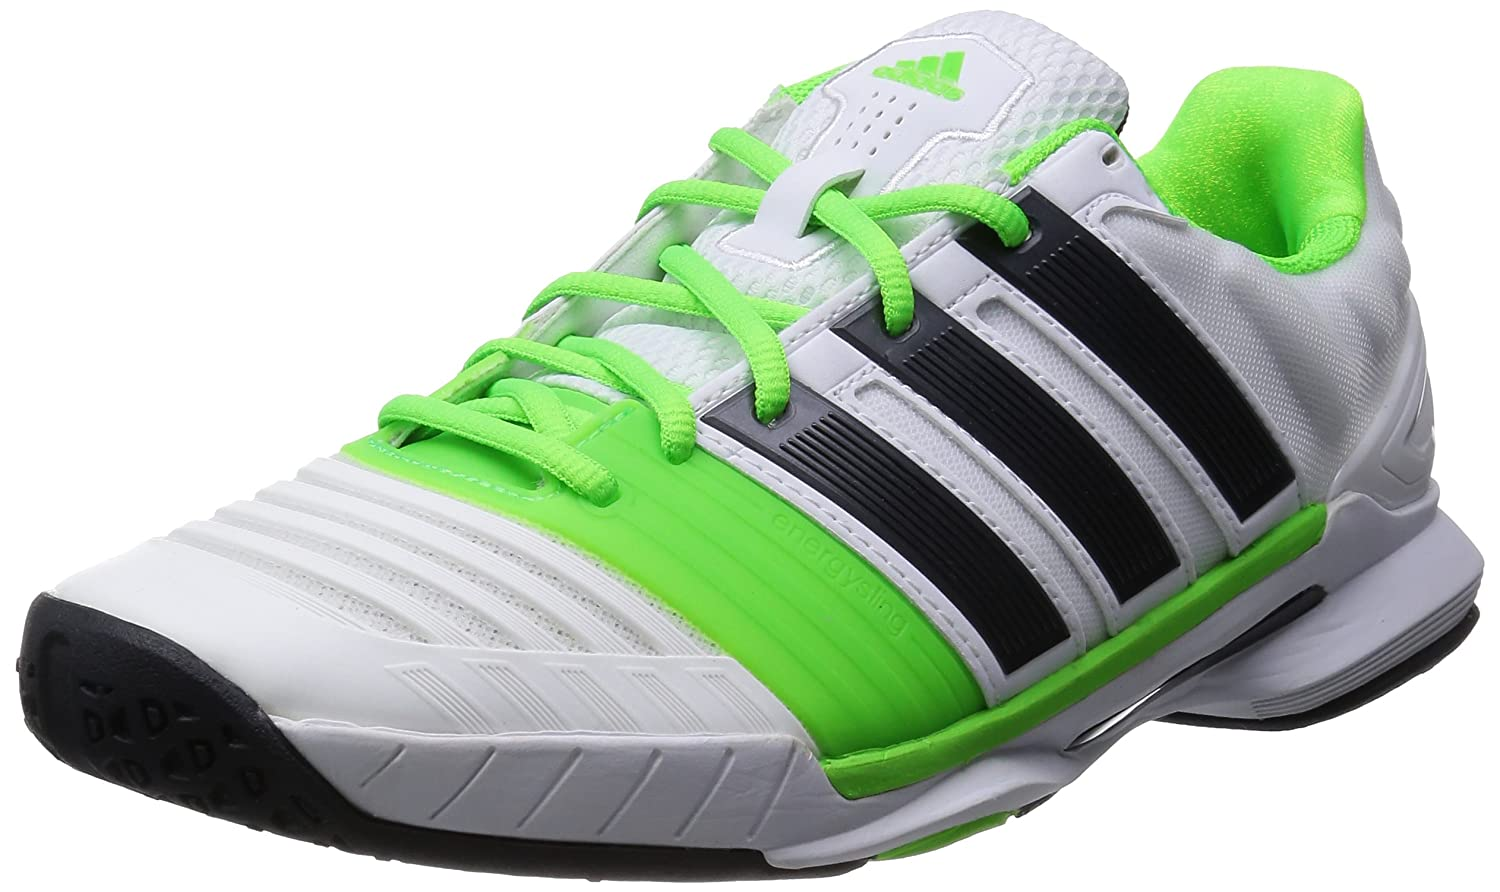 Adidas Adipower Stabil 11 Court Shoes 15 Amazon Uk Bags